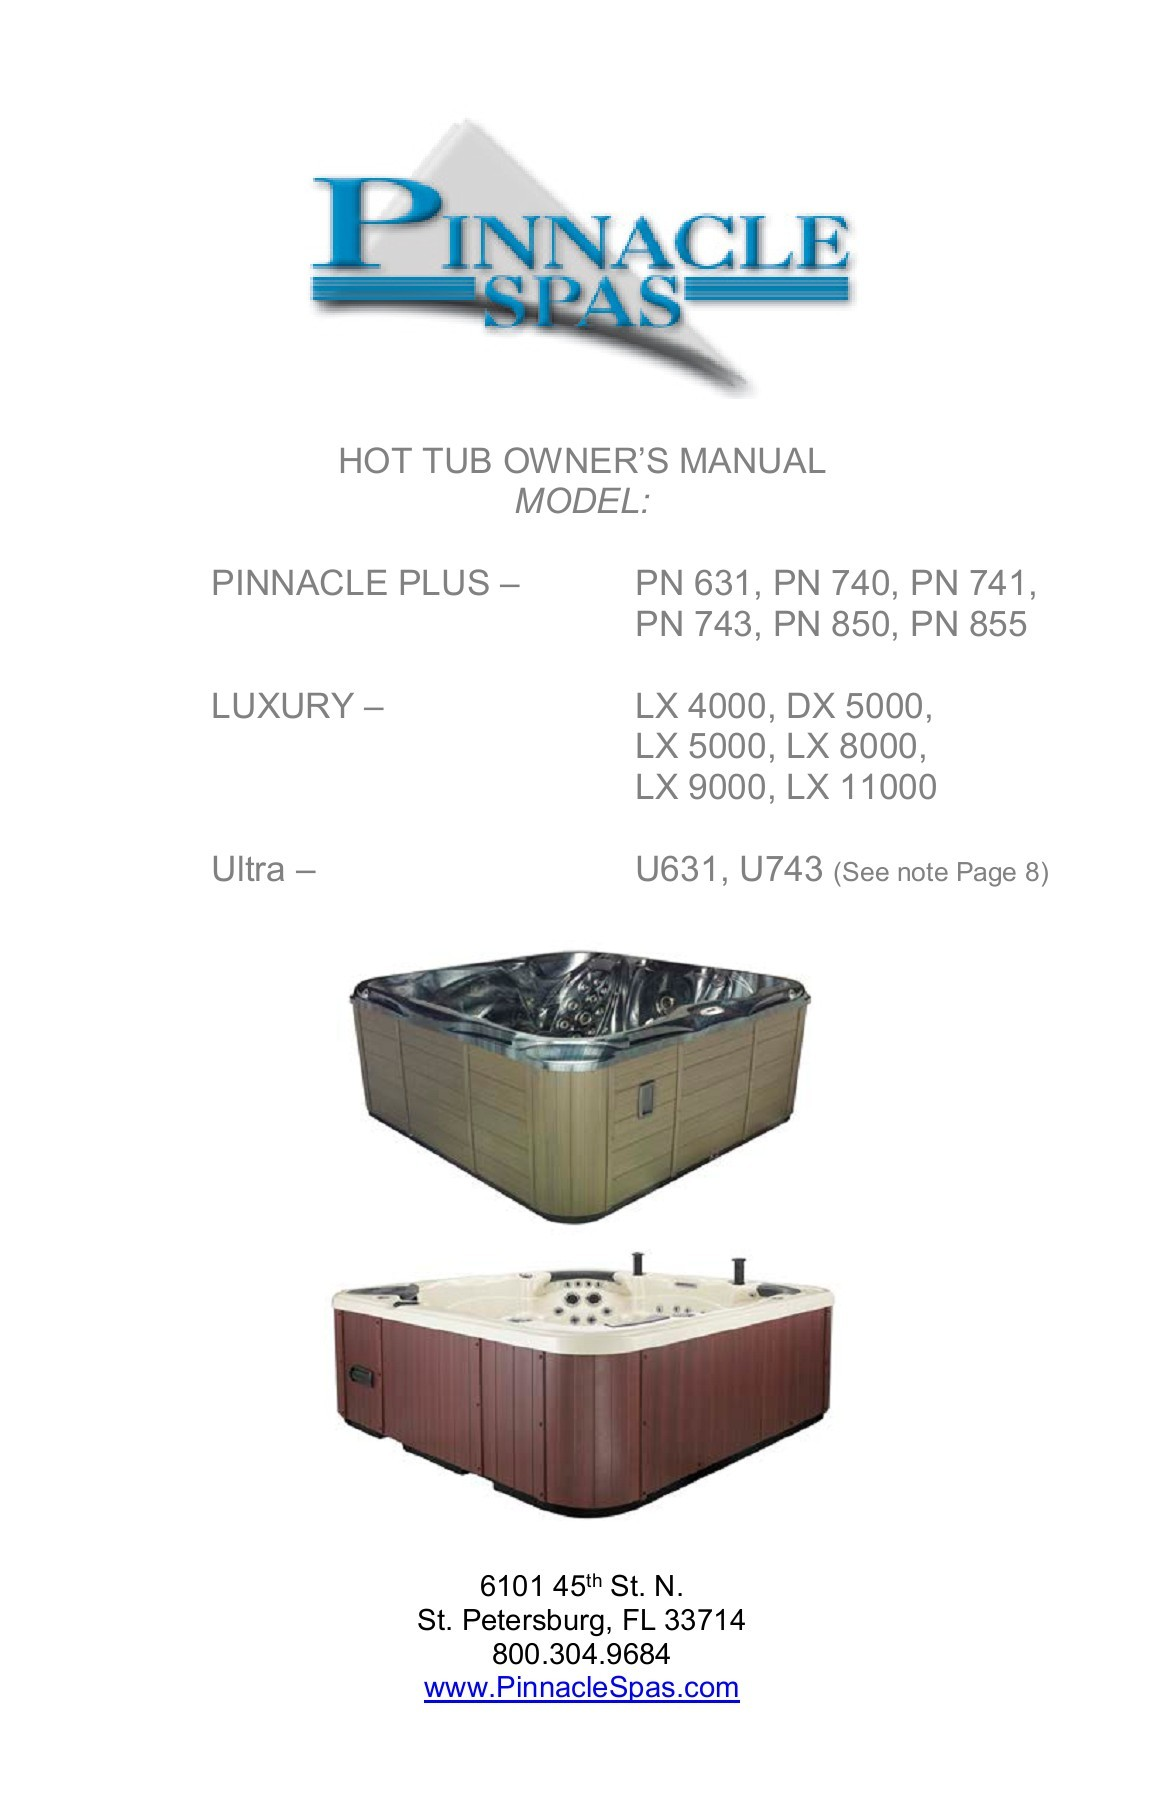 Jacuzzi Pool Manual Pinnacle Spas I Hot Tubs Owner Resources Guides And Manuals